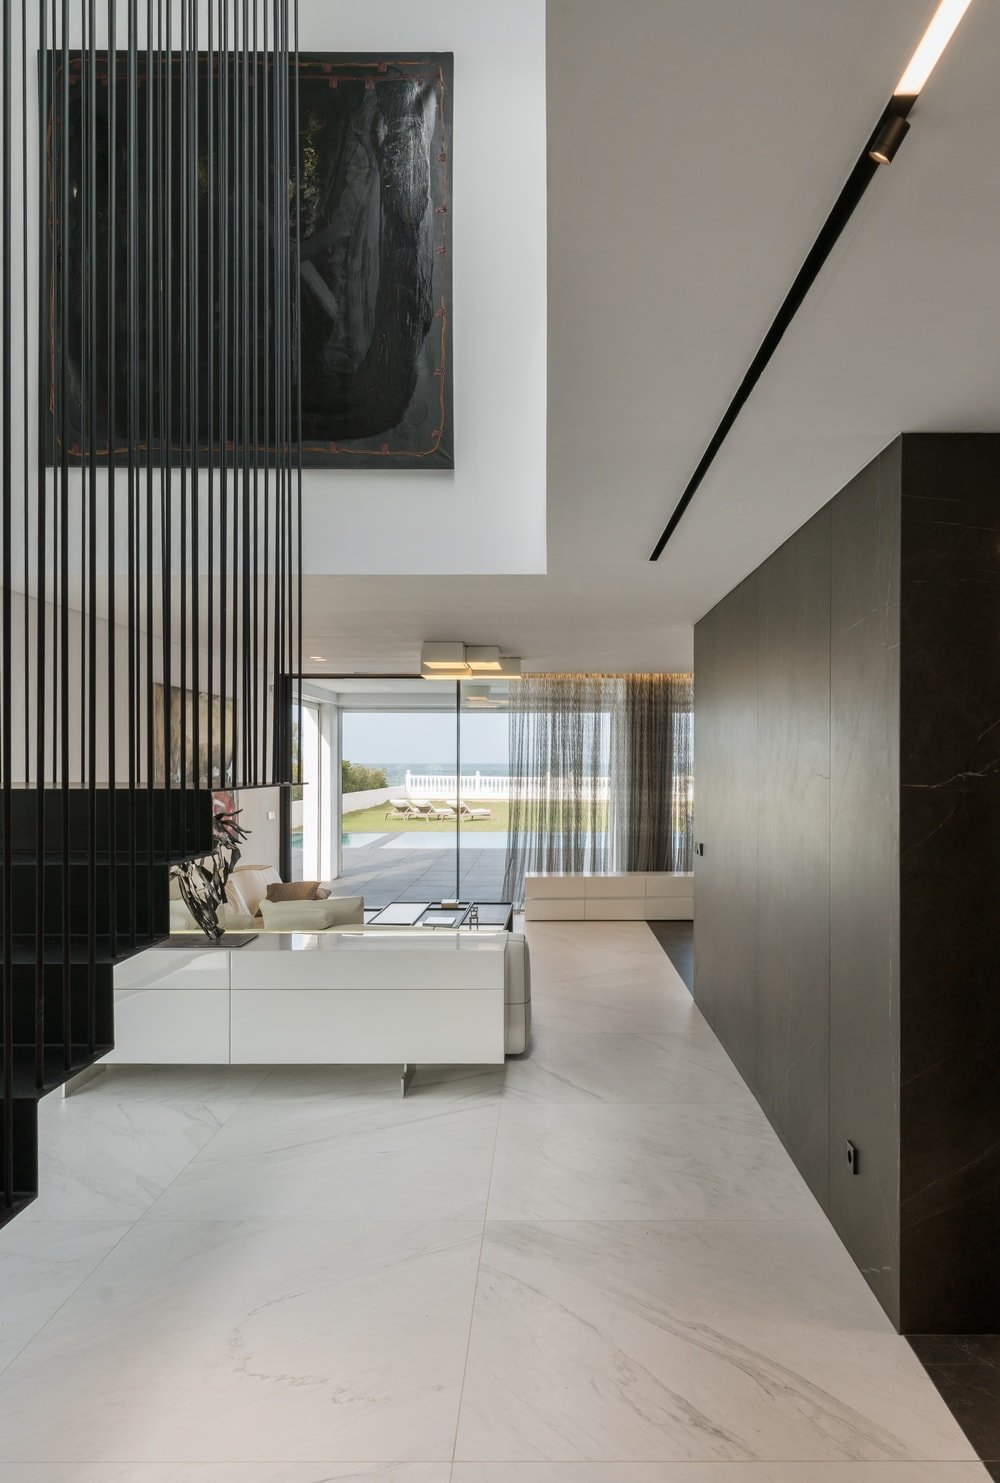 From the black modern staircase, you can clearly see the living room and its bright furniture contrasted by the black wall that separates it from the kitchen.